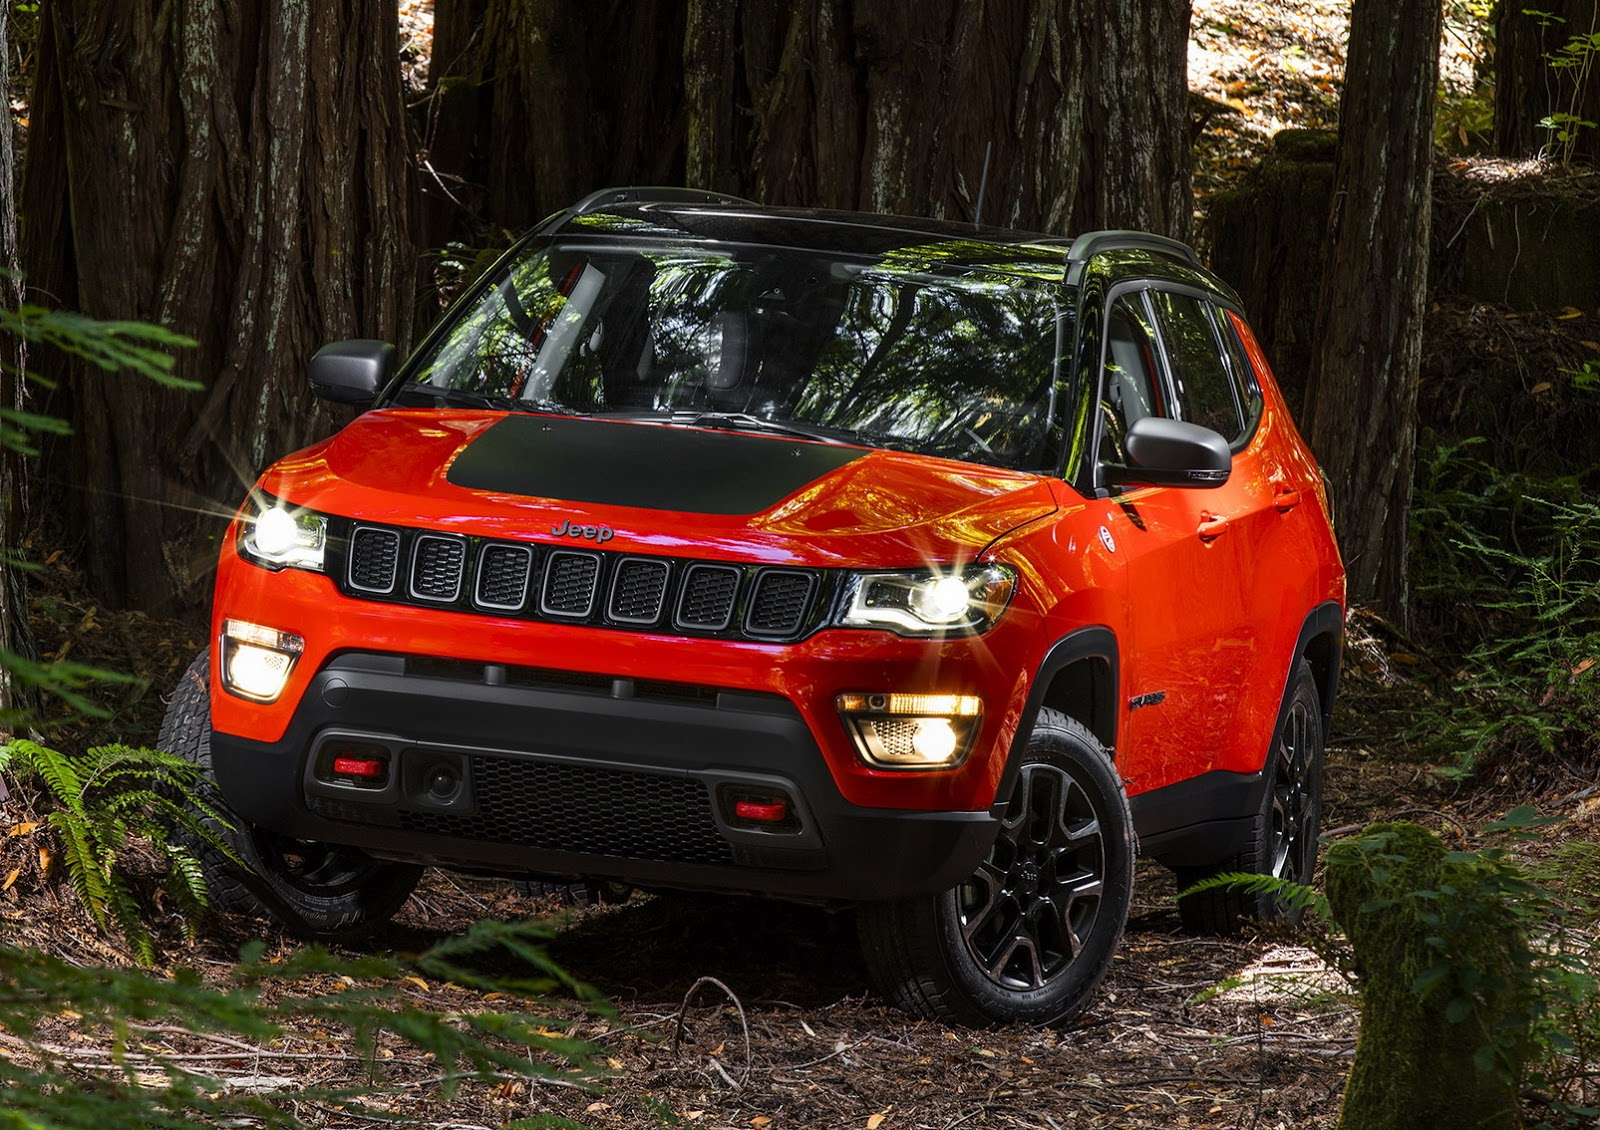 2017 jeep compass revealed, looks like a smaller grand cherokee